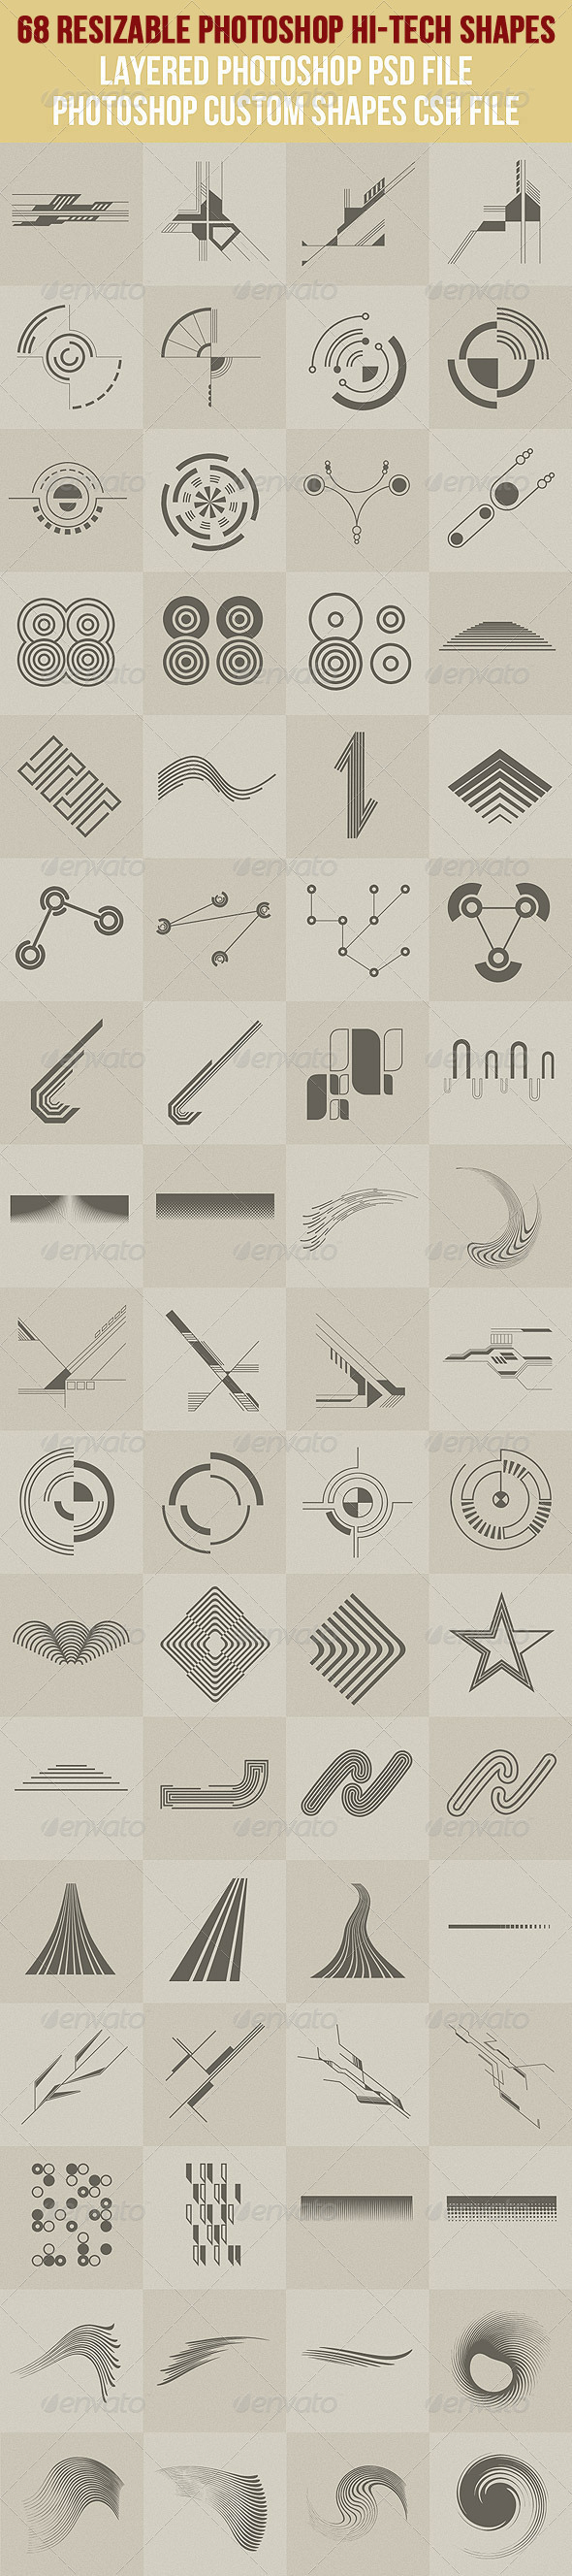 GraphicRiver 68 Photoshop Hi-Tech Shapes 1 2628409